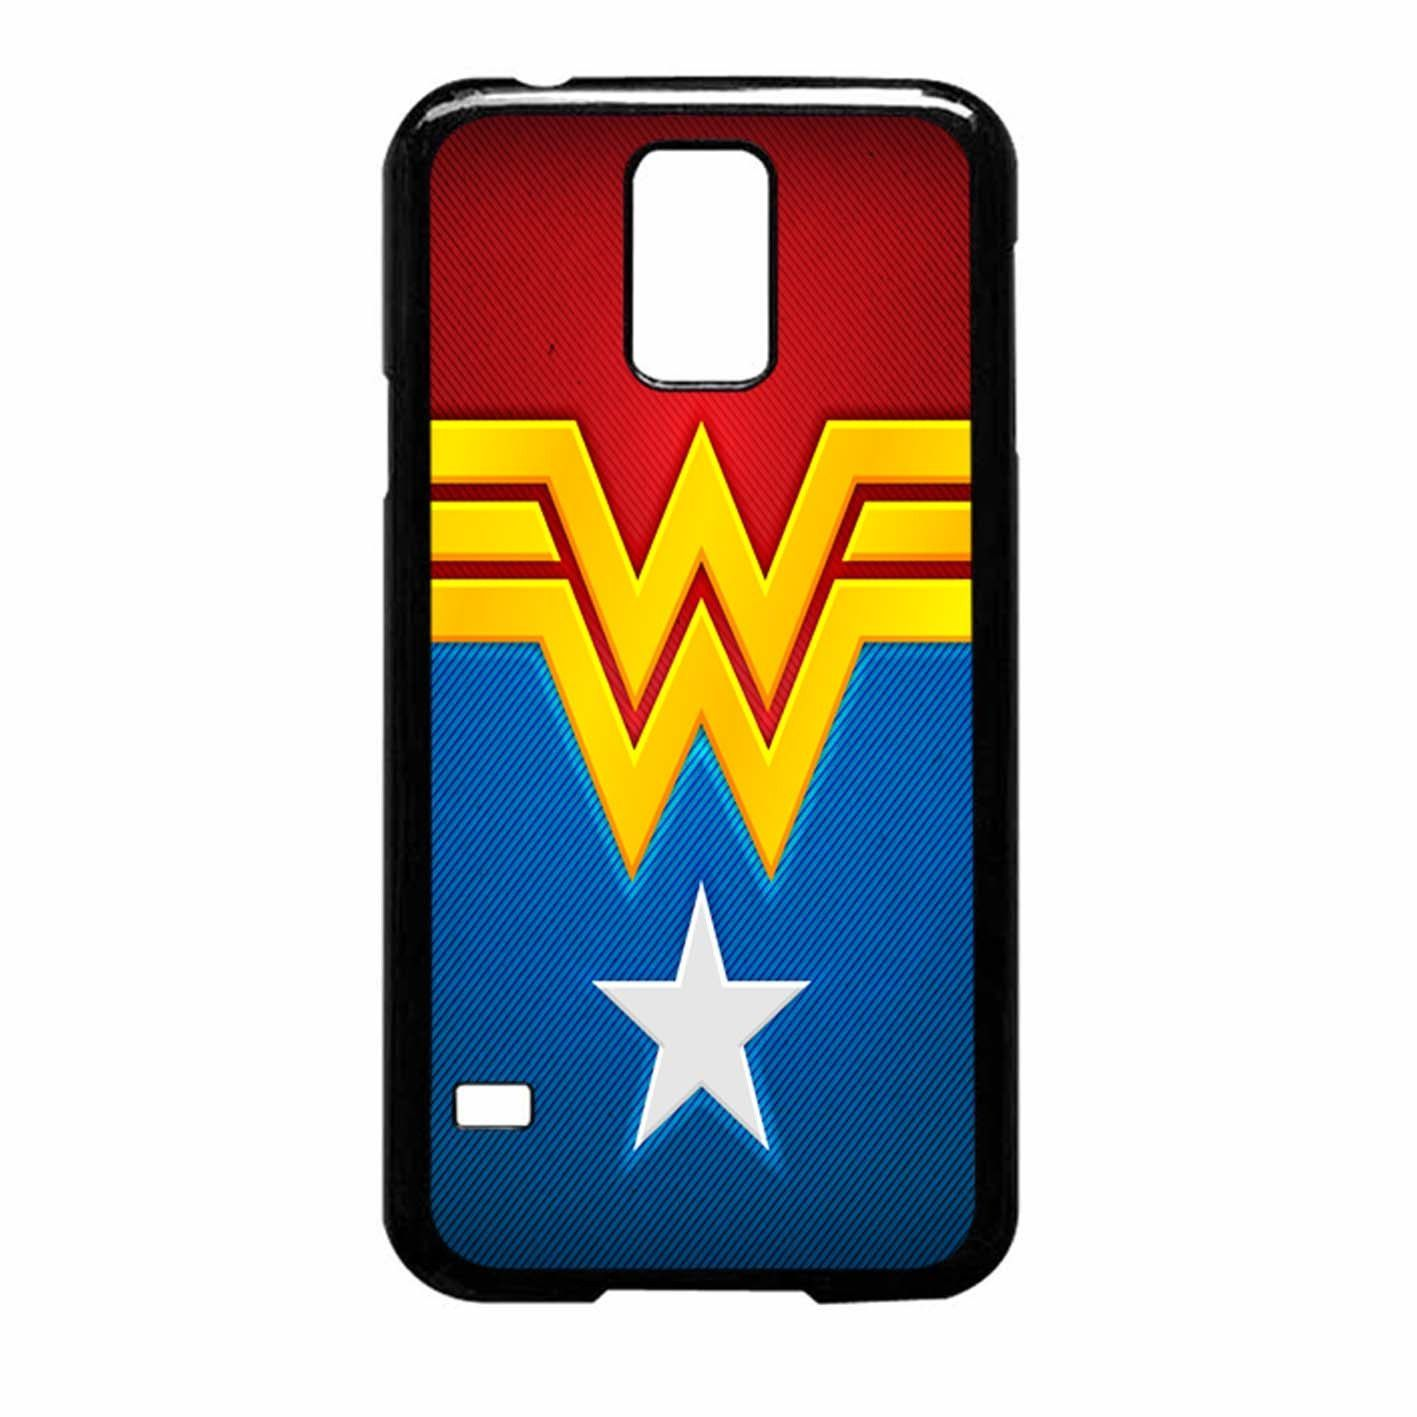 Wonder Woman Samsung Galaxy S5 Case With Images Samsung Galaxy Case Samsung Galaxy S5 Cases Samsung Galaxy S4 Cases